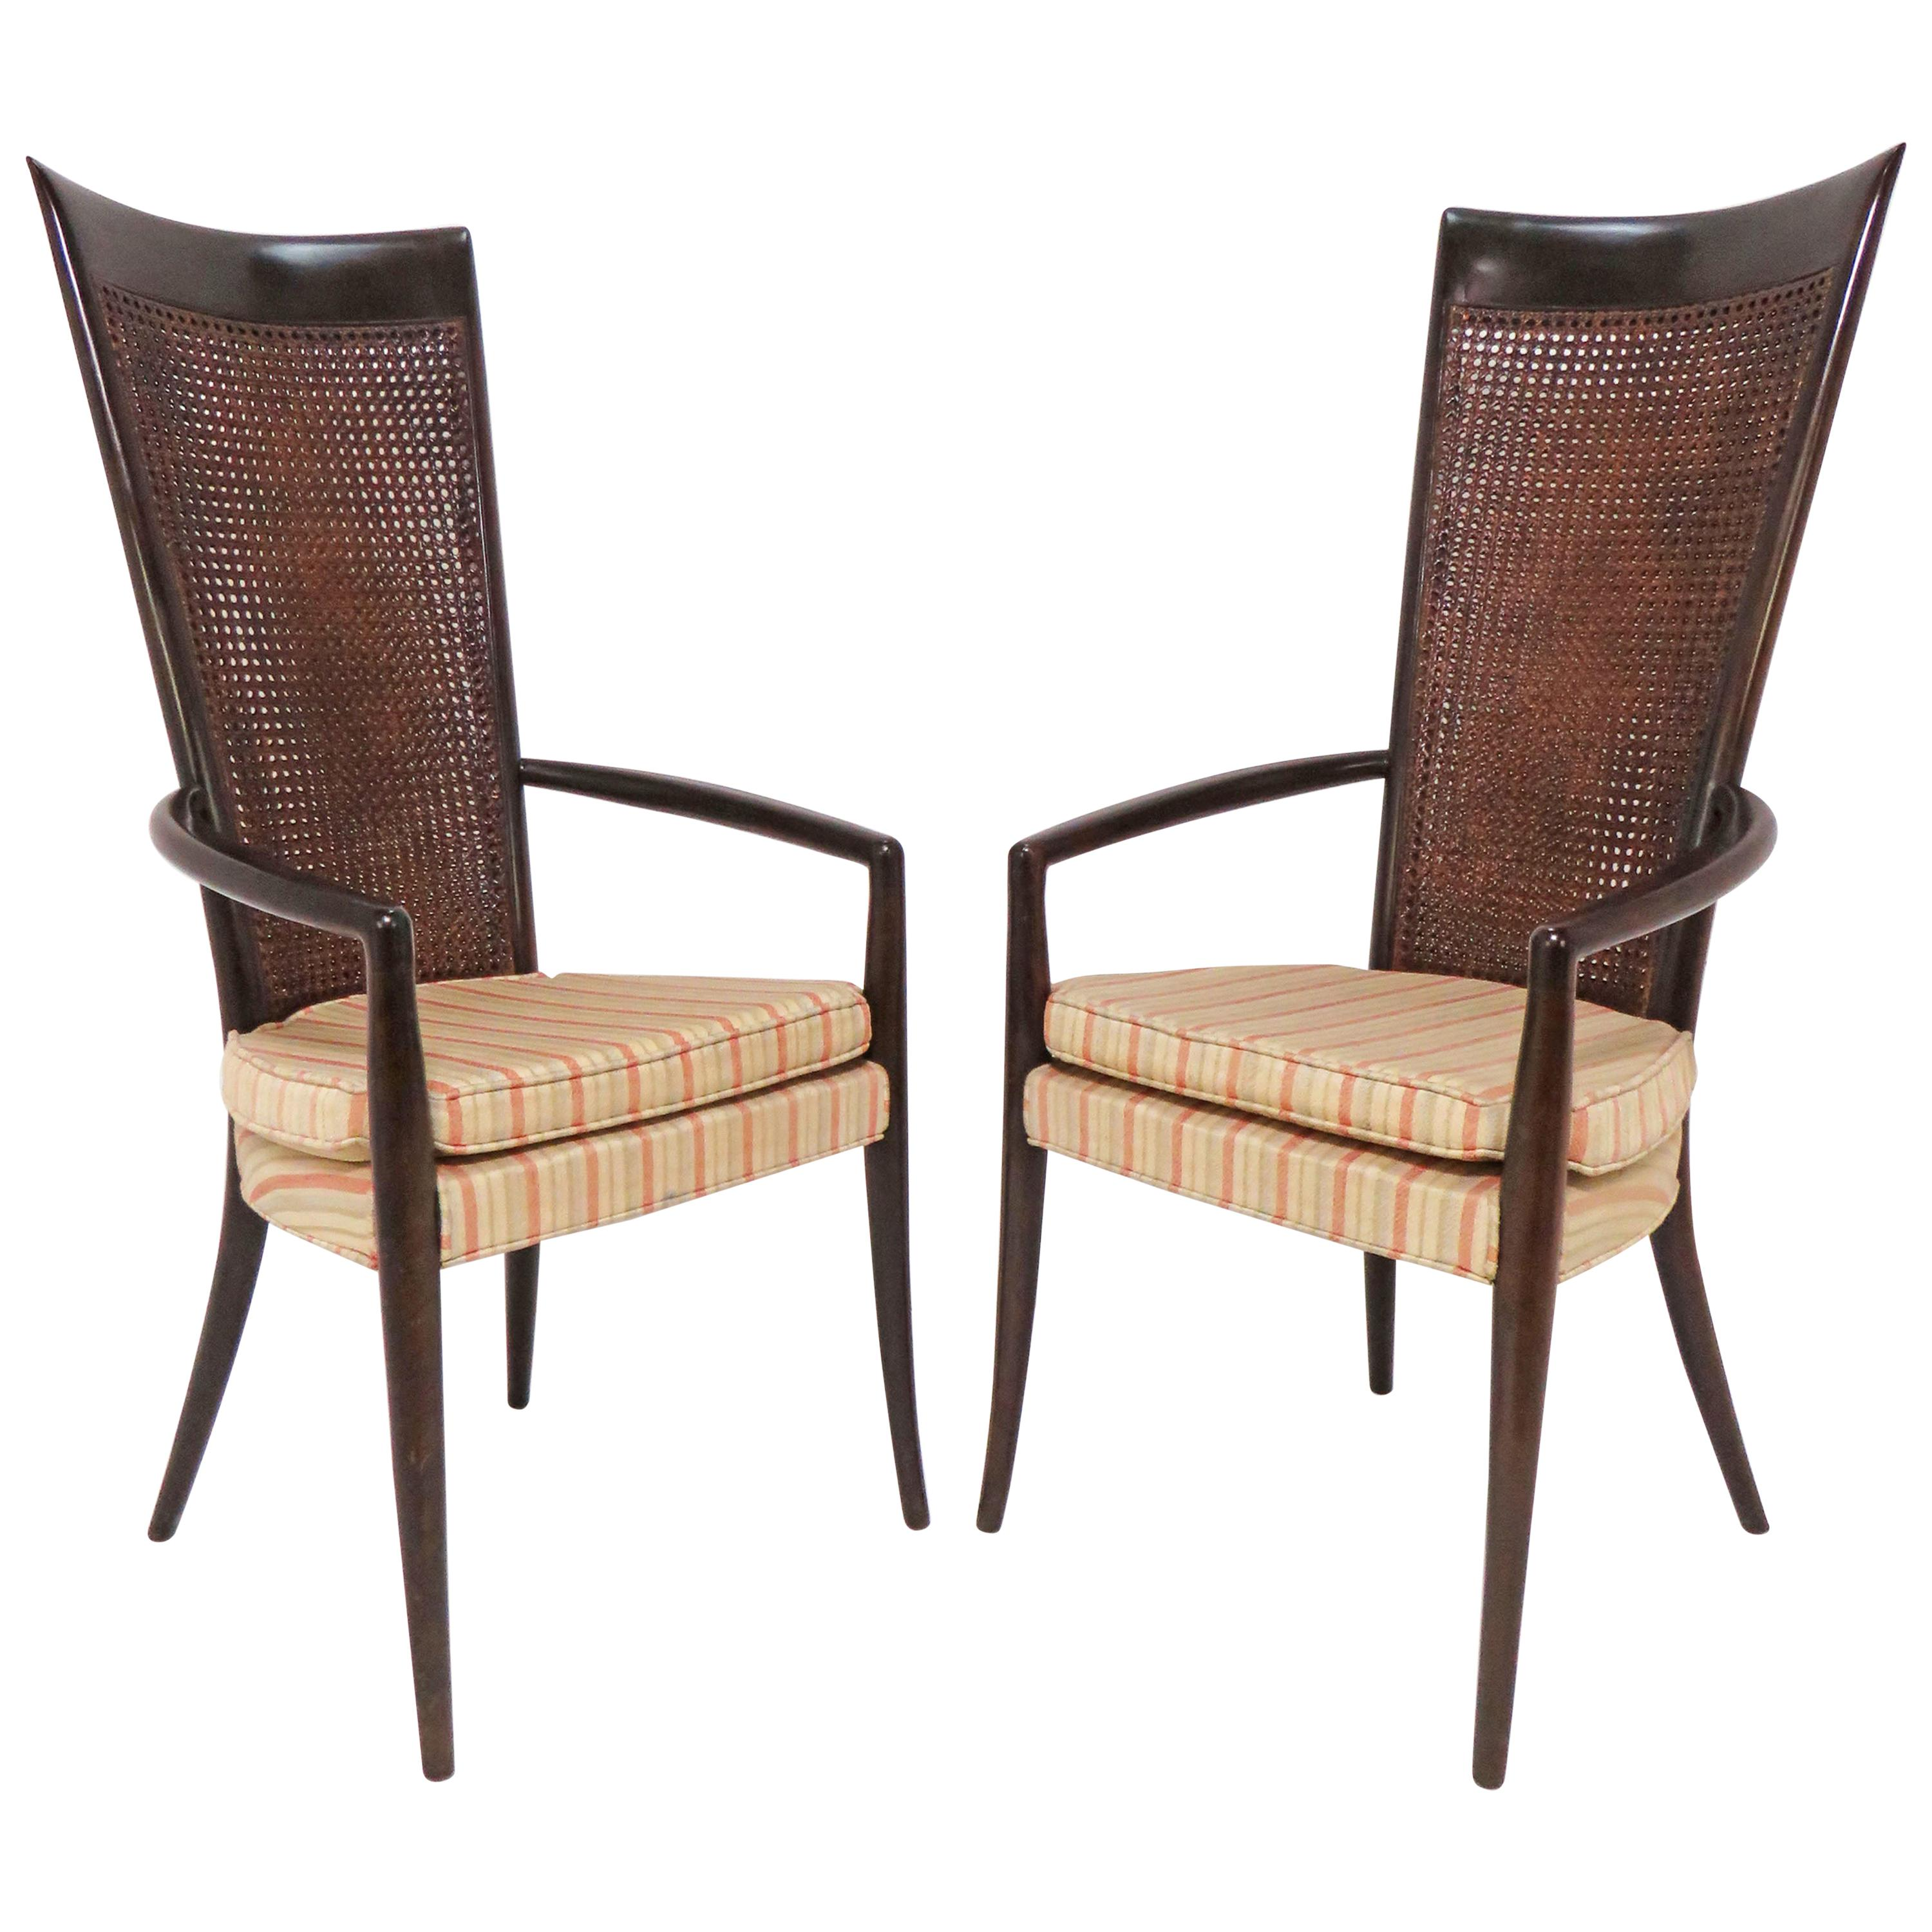 Pair of Italian High Back Armchairs in Manner of Paolo Buffa, circa 1950s